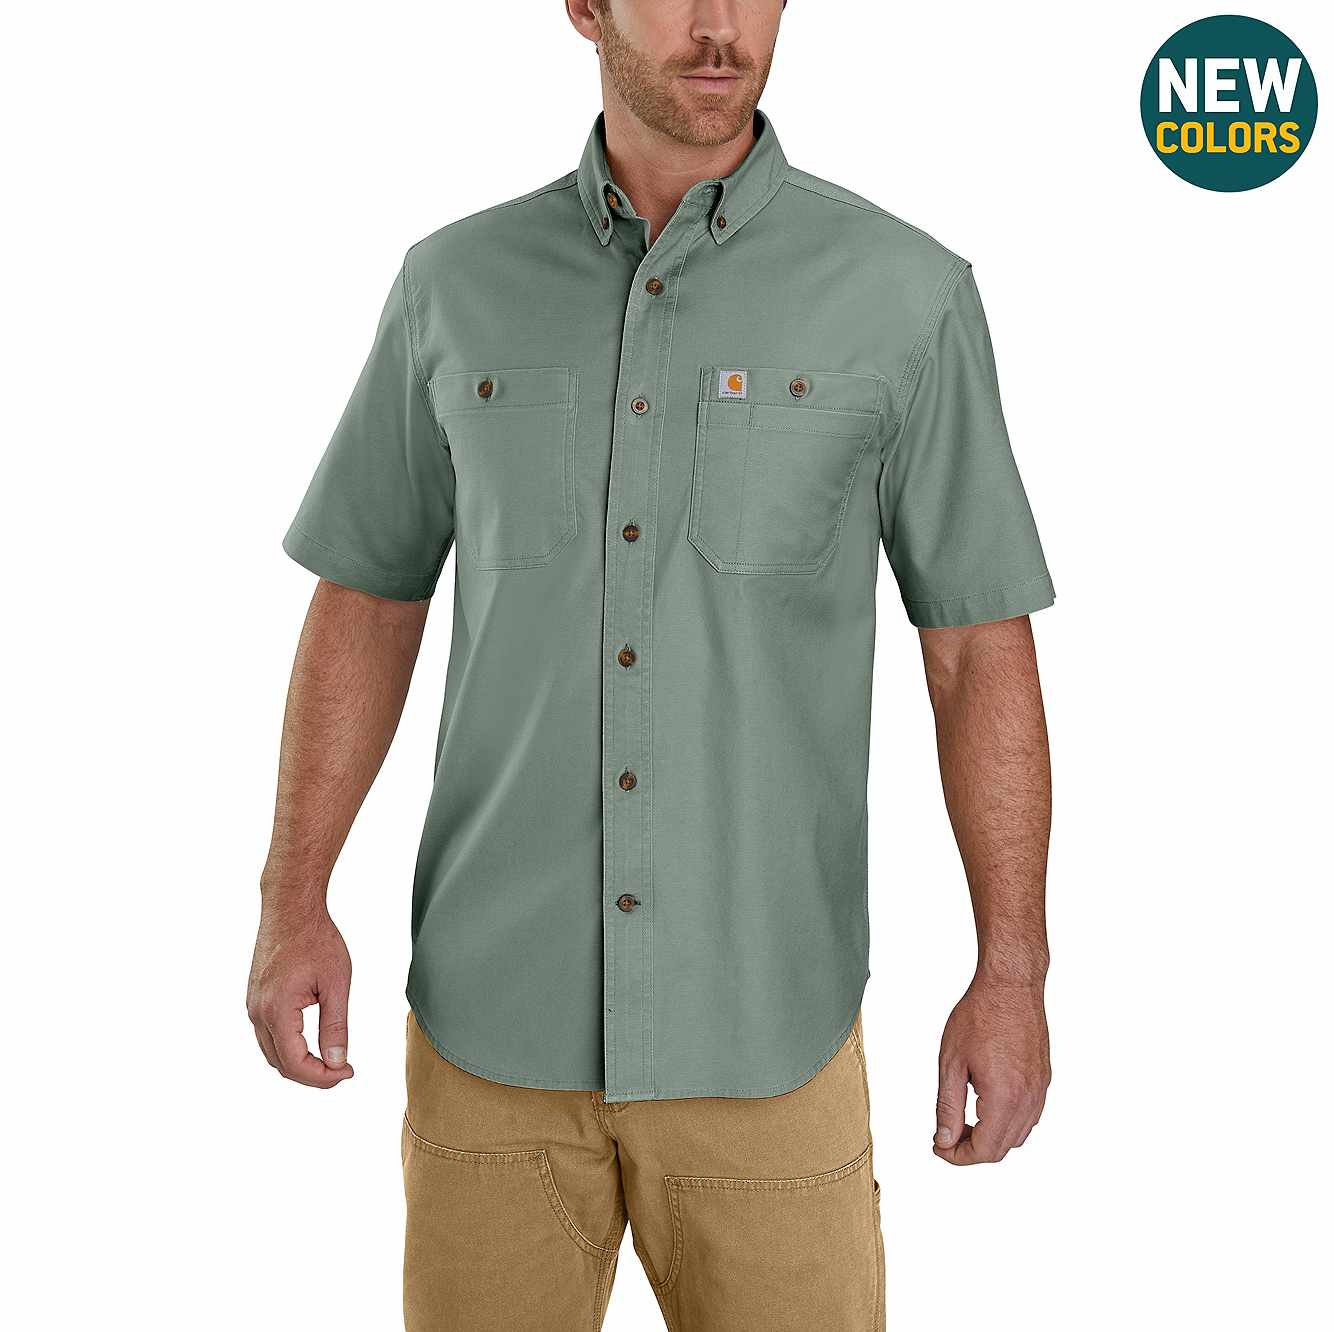 Picture of Rugged Flex Rigby Short-Sleeve Work Shirt in Leaf Green